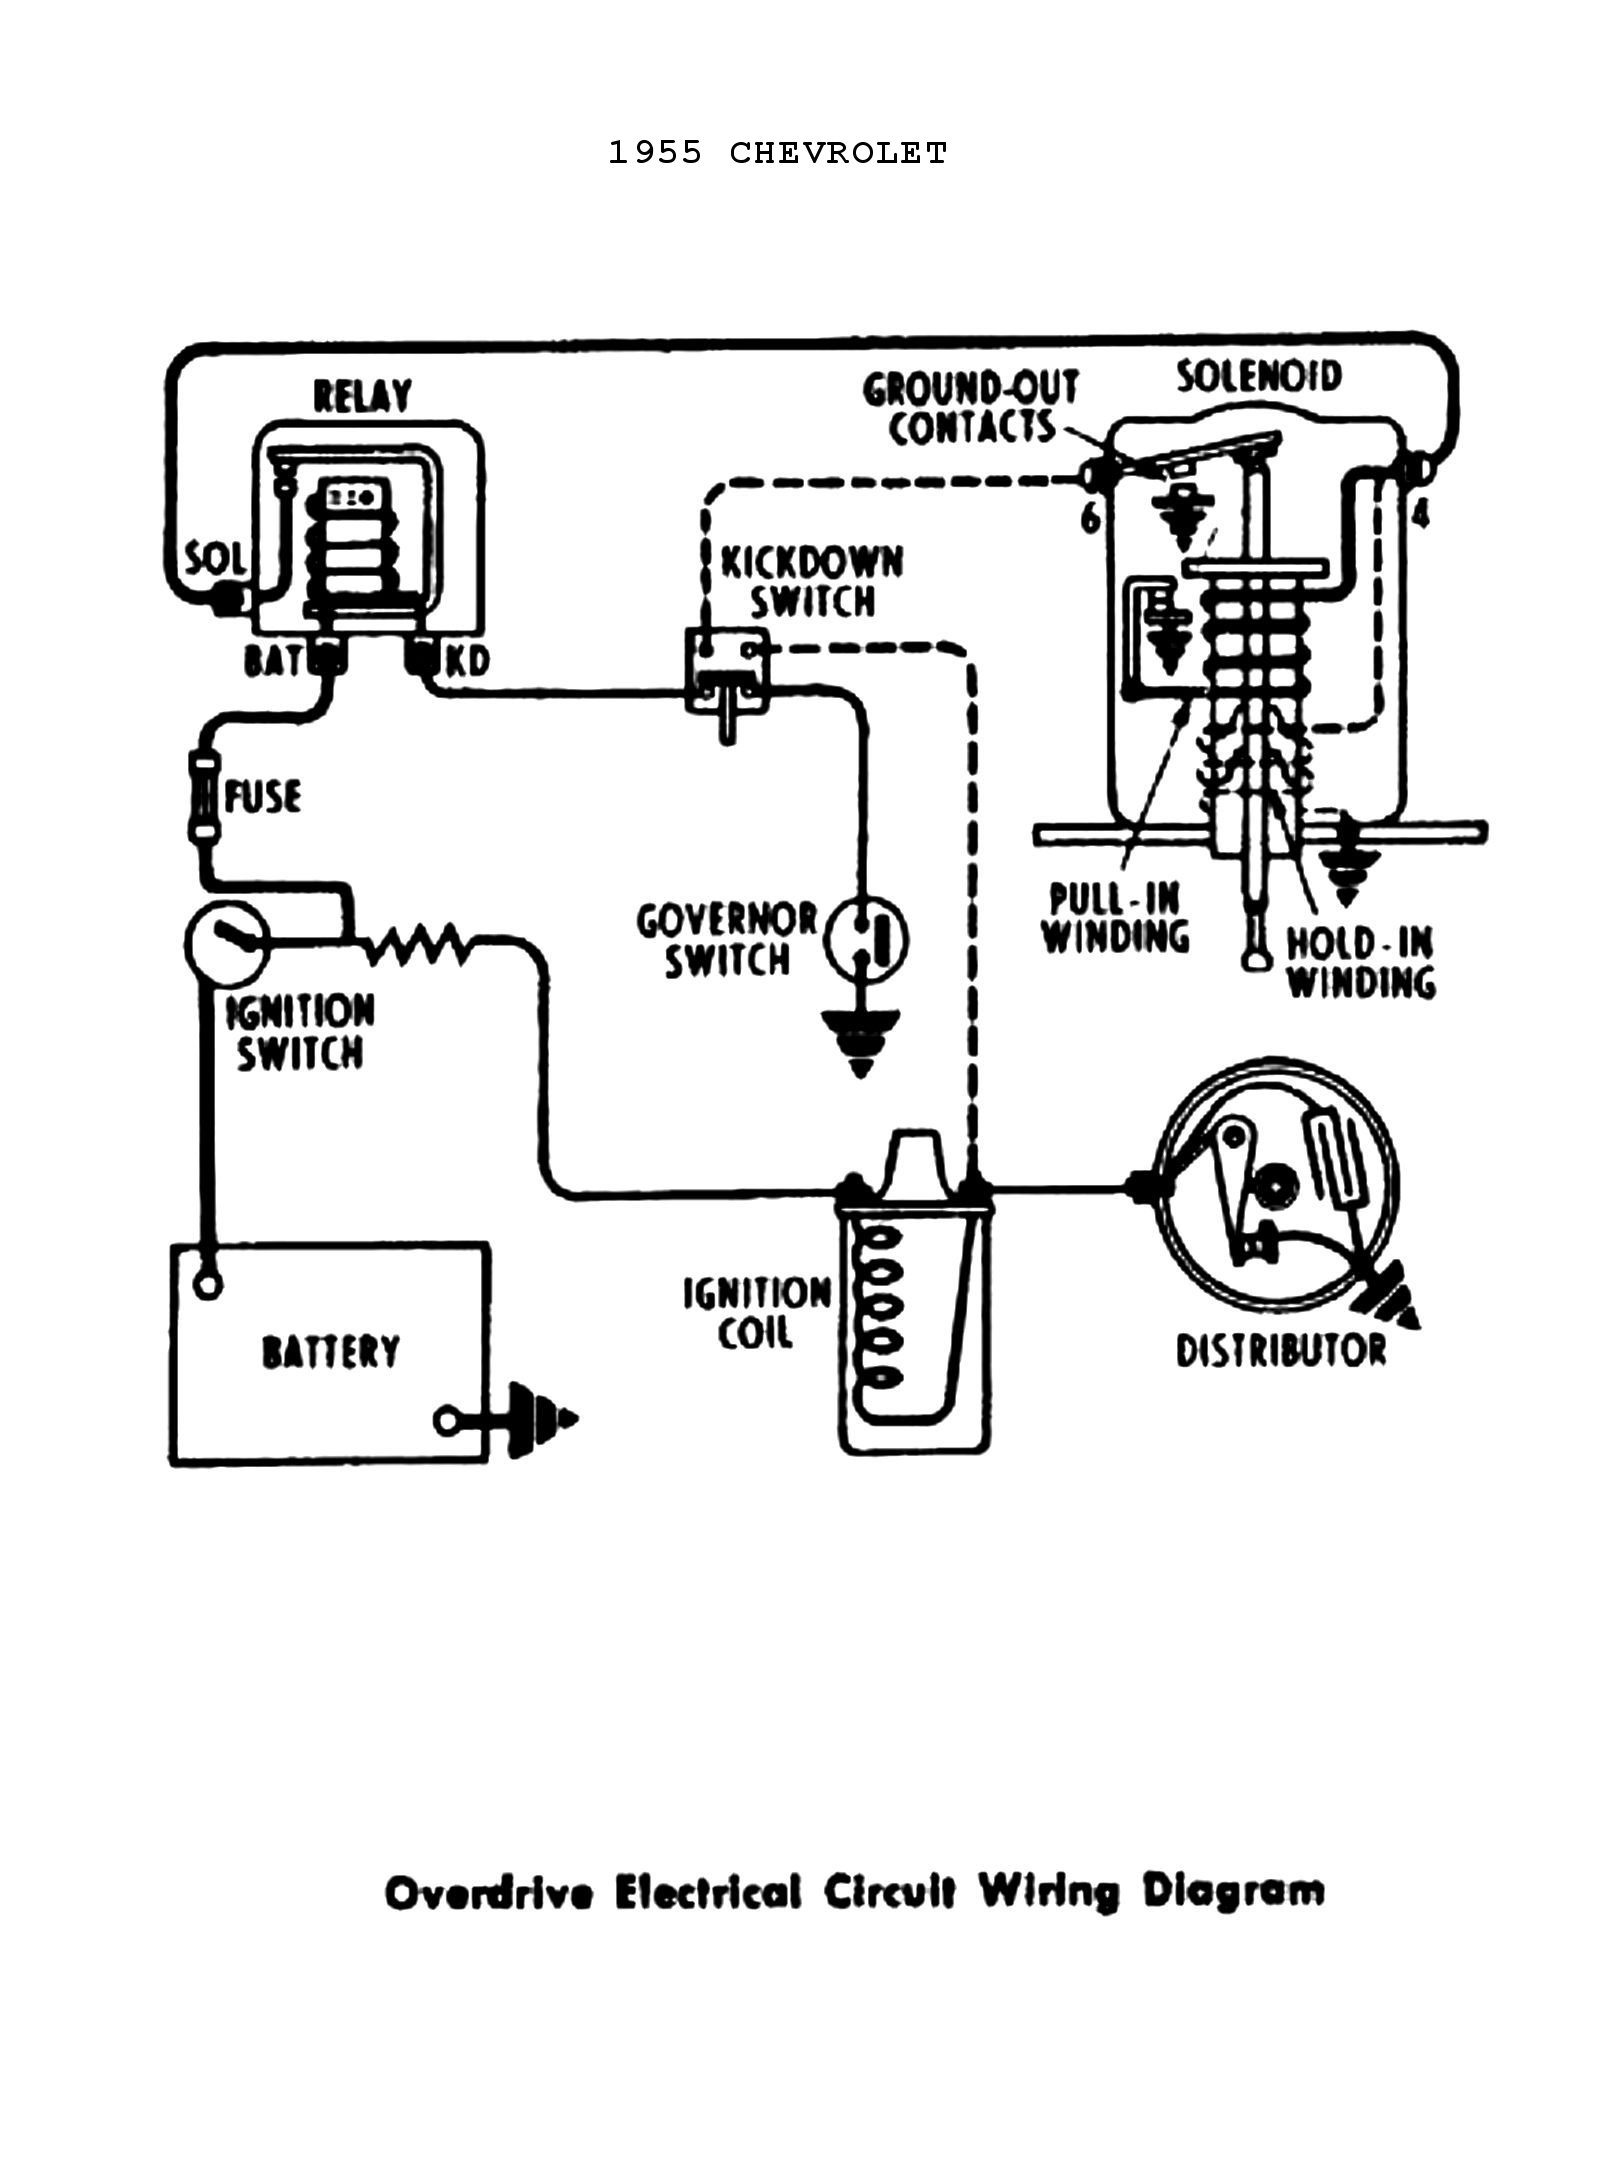 Ignition Coil    Wiring        Wiring       Diagram    Raw